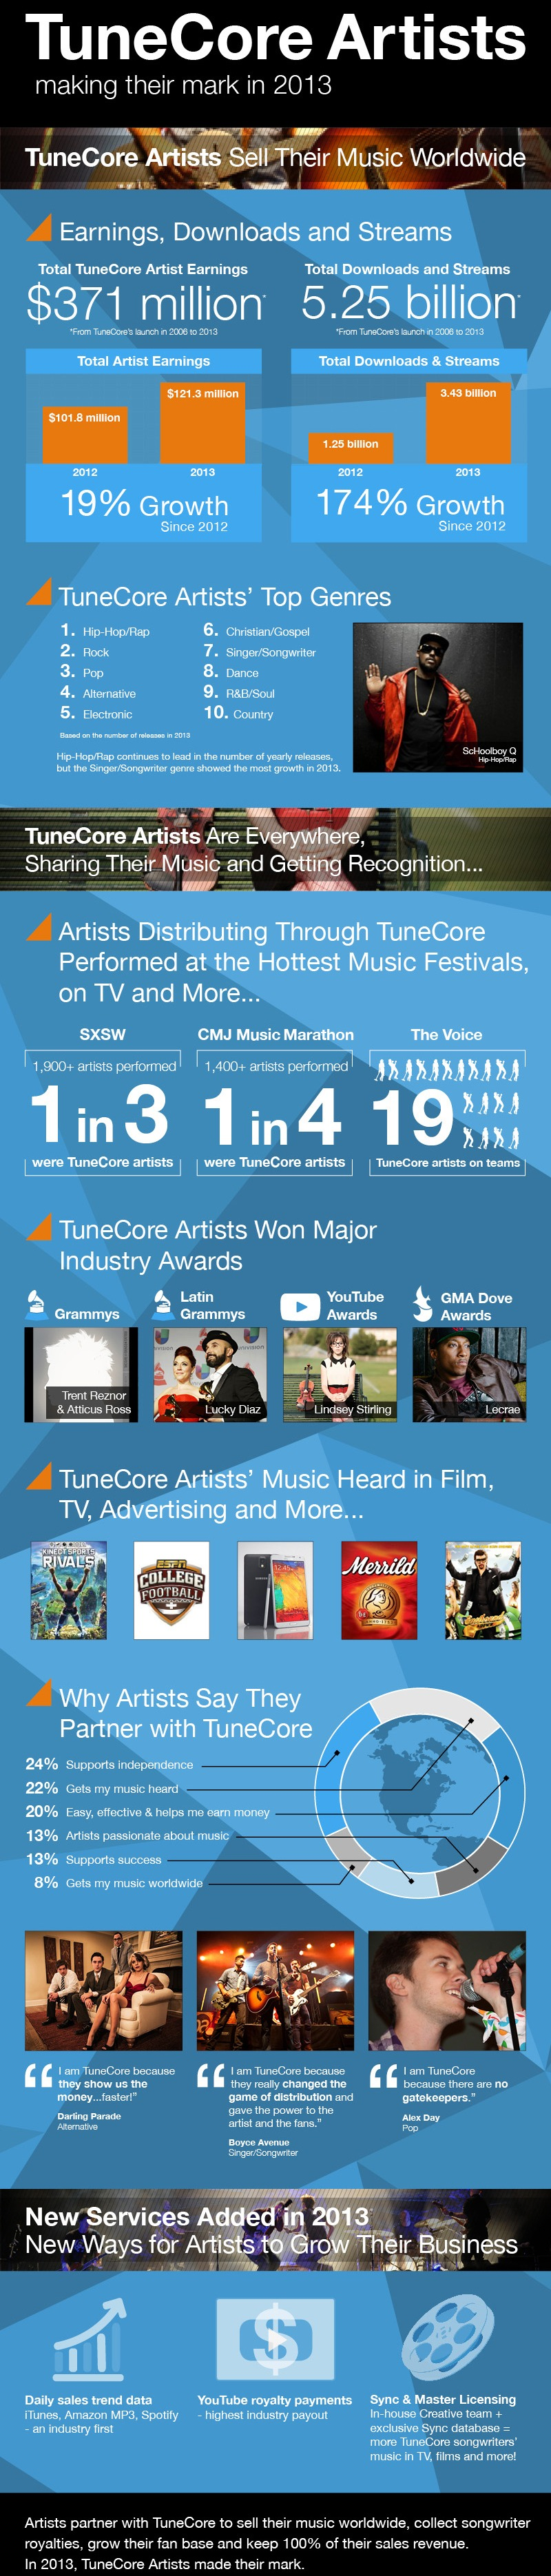 TuneCore Artists making their.